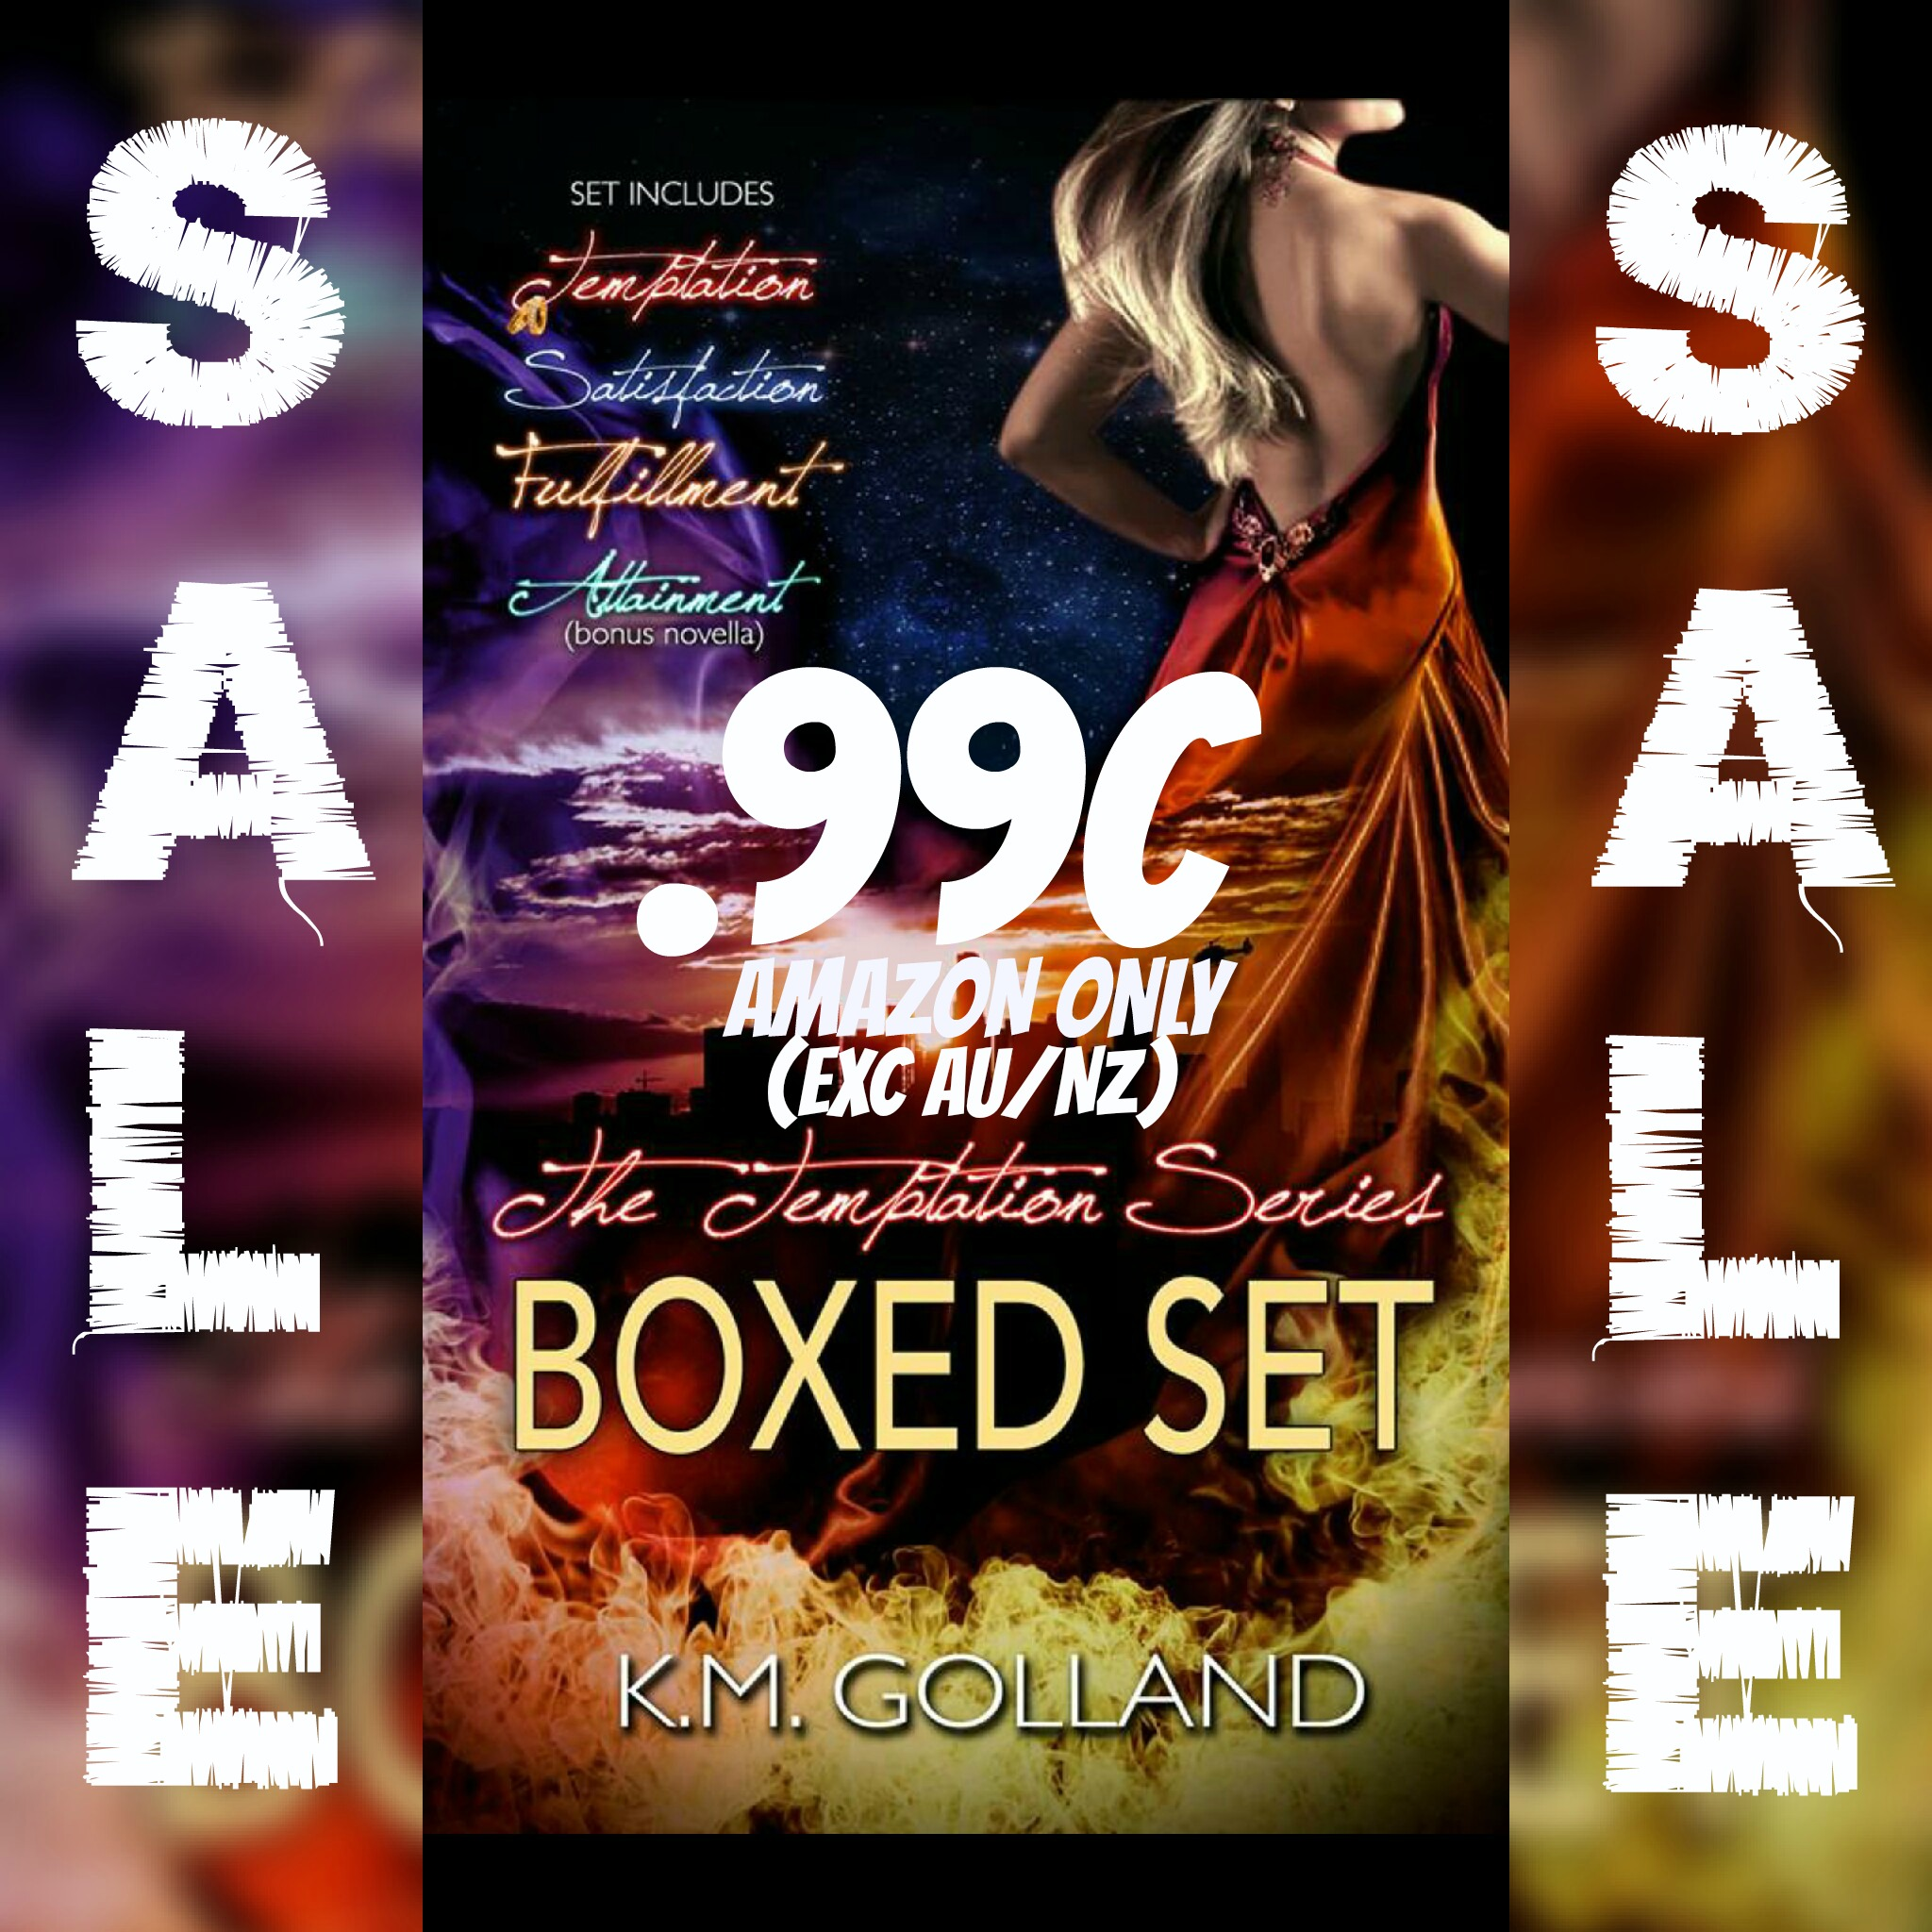 BOXED SET SALE